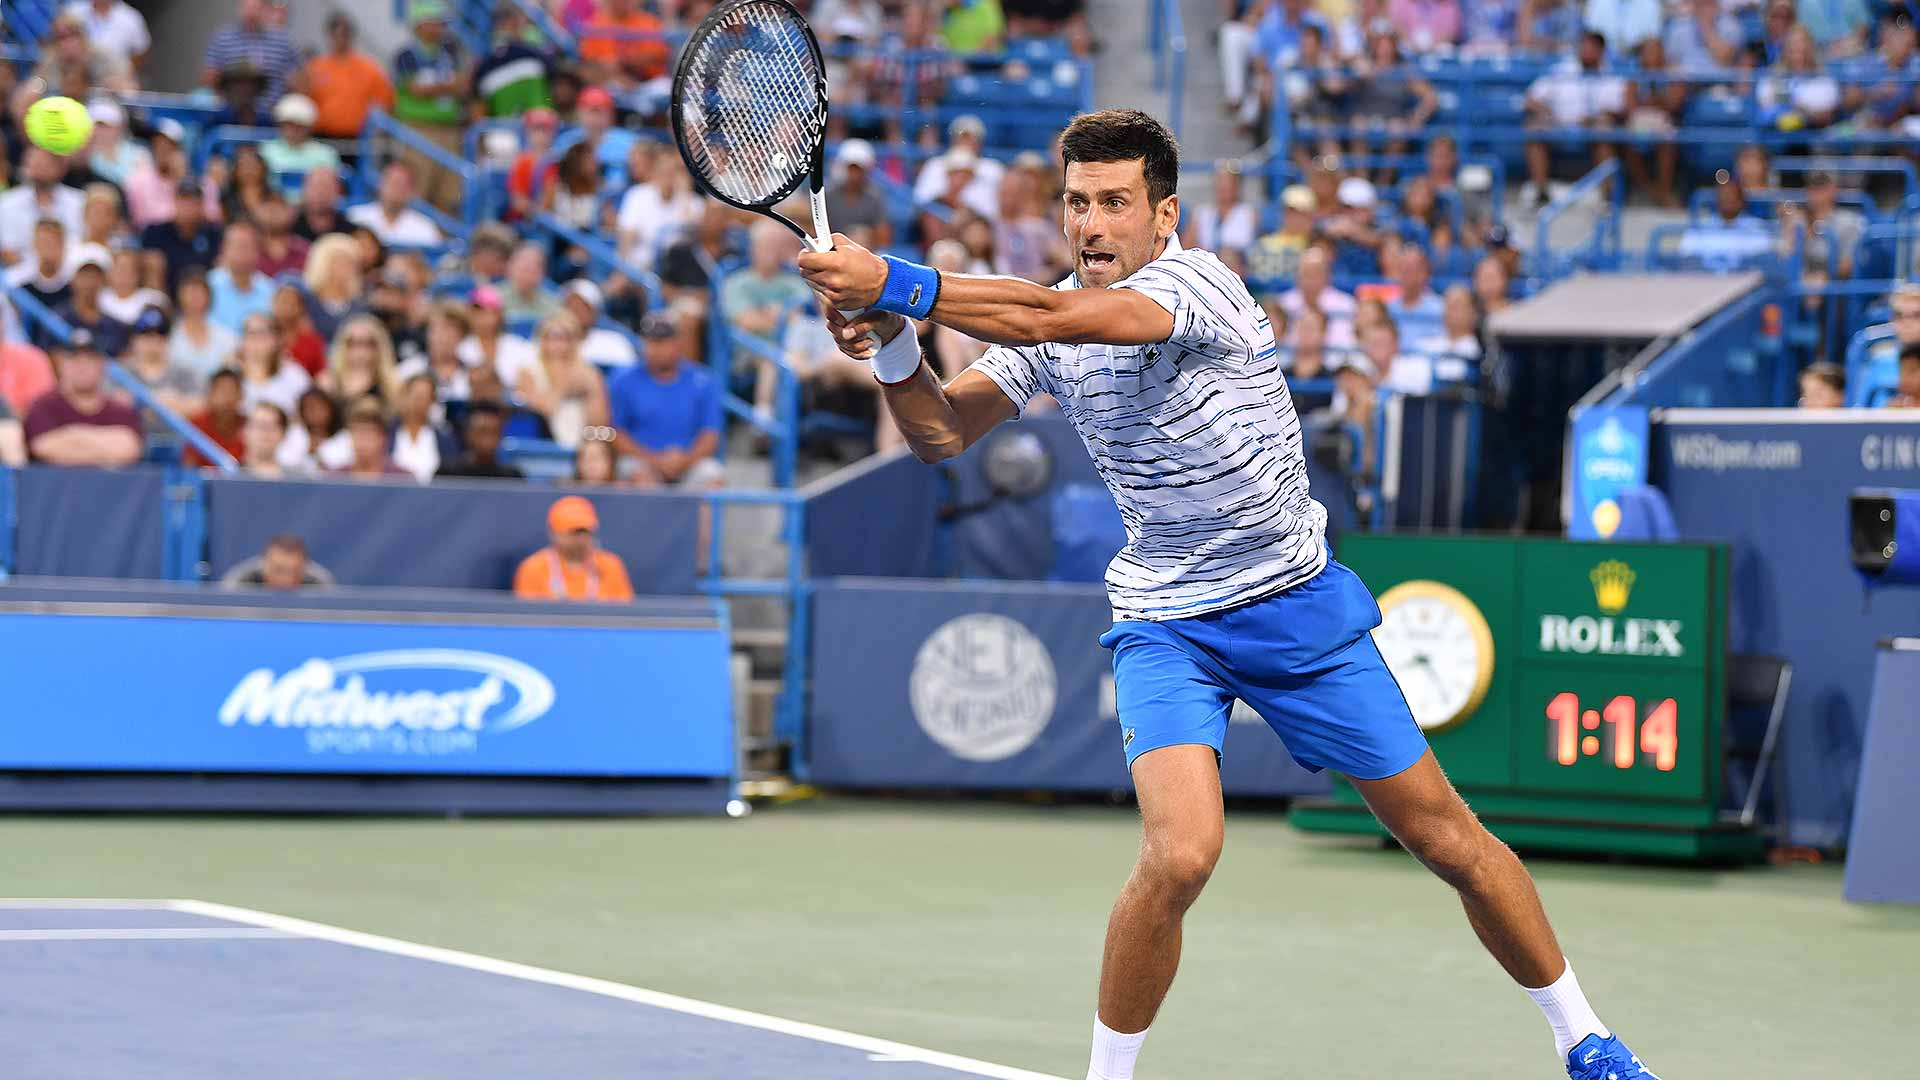 <a href='/en/players/novak-djokovic/d643/overview'>Novak Djokovic</a> saves all four break points faced on Thursday against <a href='/en/players/pablo-carreno-busta/cd85/overview'>Pablo Carreno Busta</a> in Cincinnati.